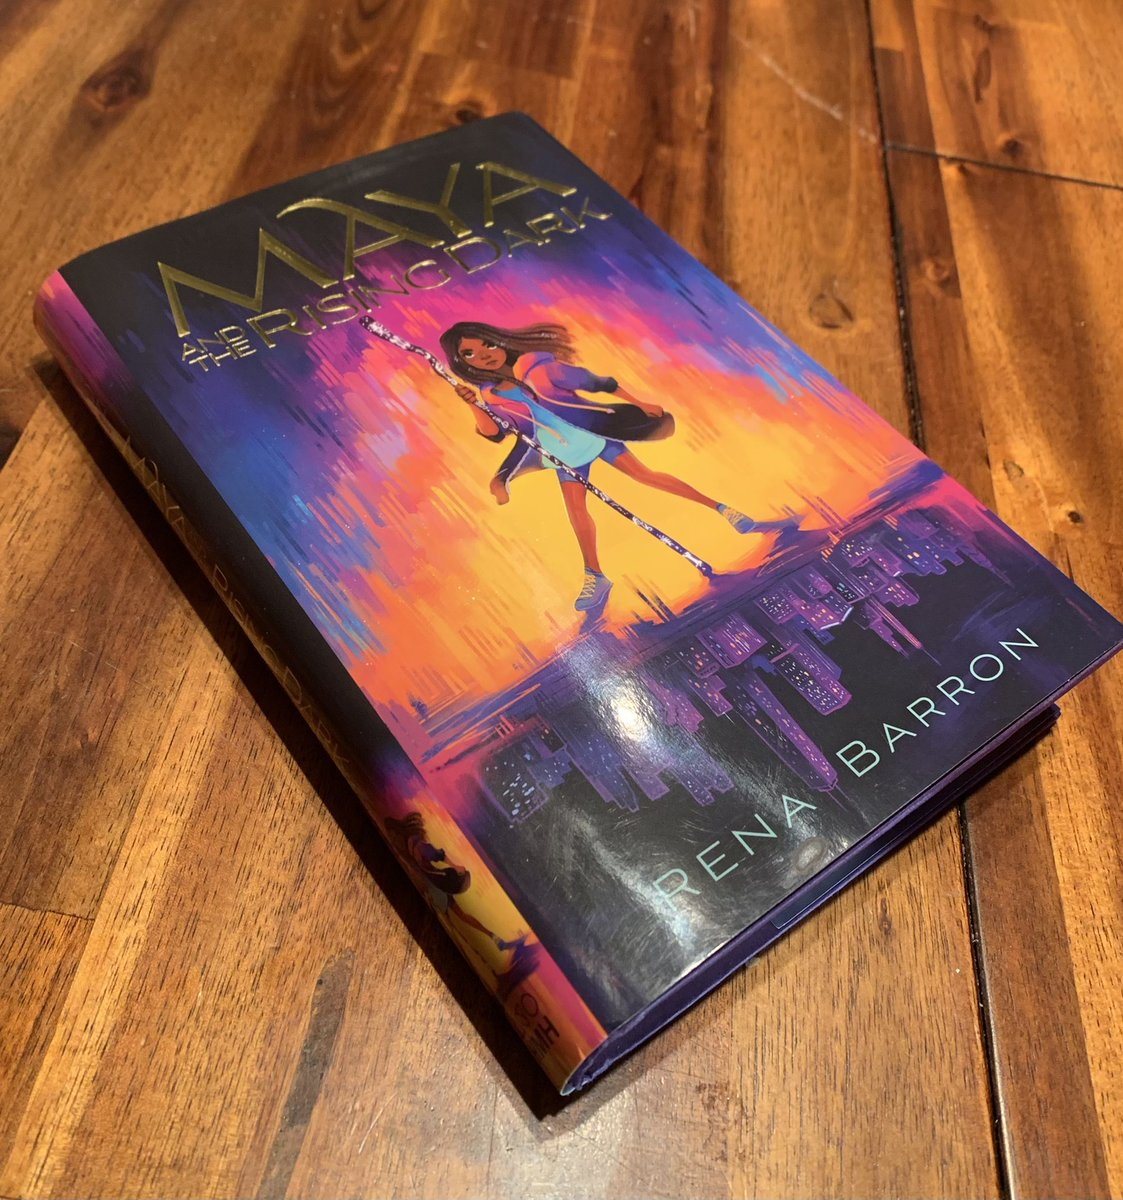 @renathedreamer Loved this story! Now it will go to school for students to read.